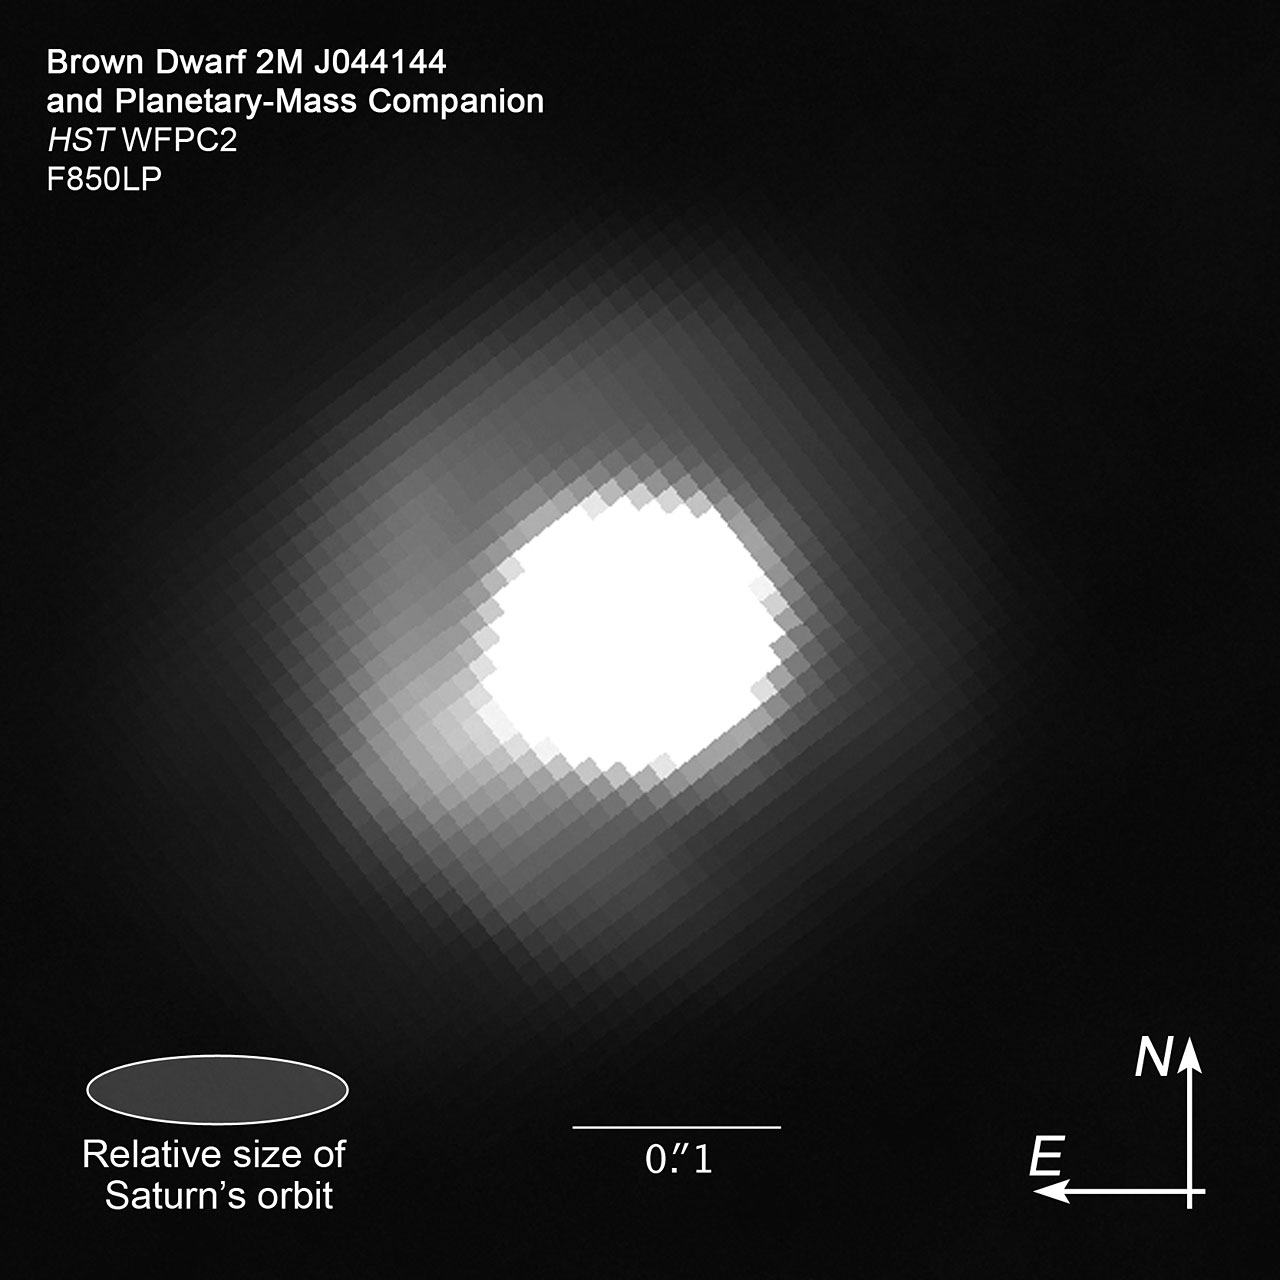 Compass and scale image of brown dwarf 2M J044144 with companion